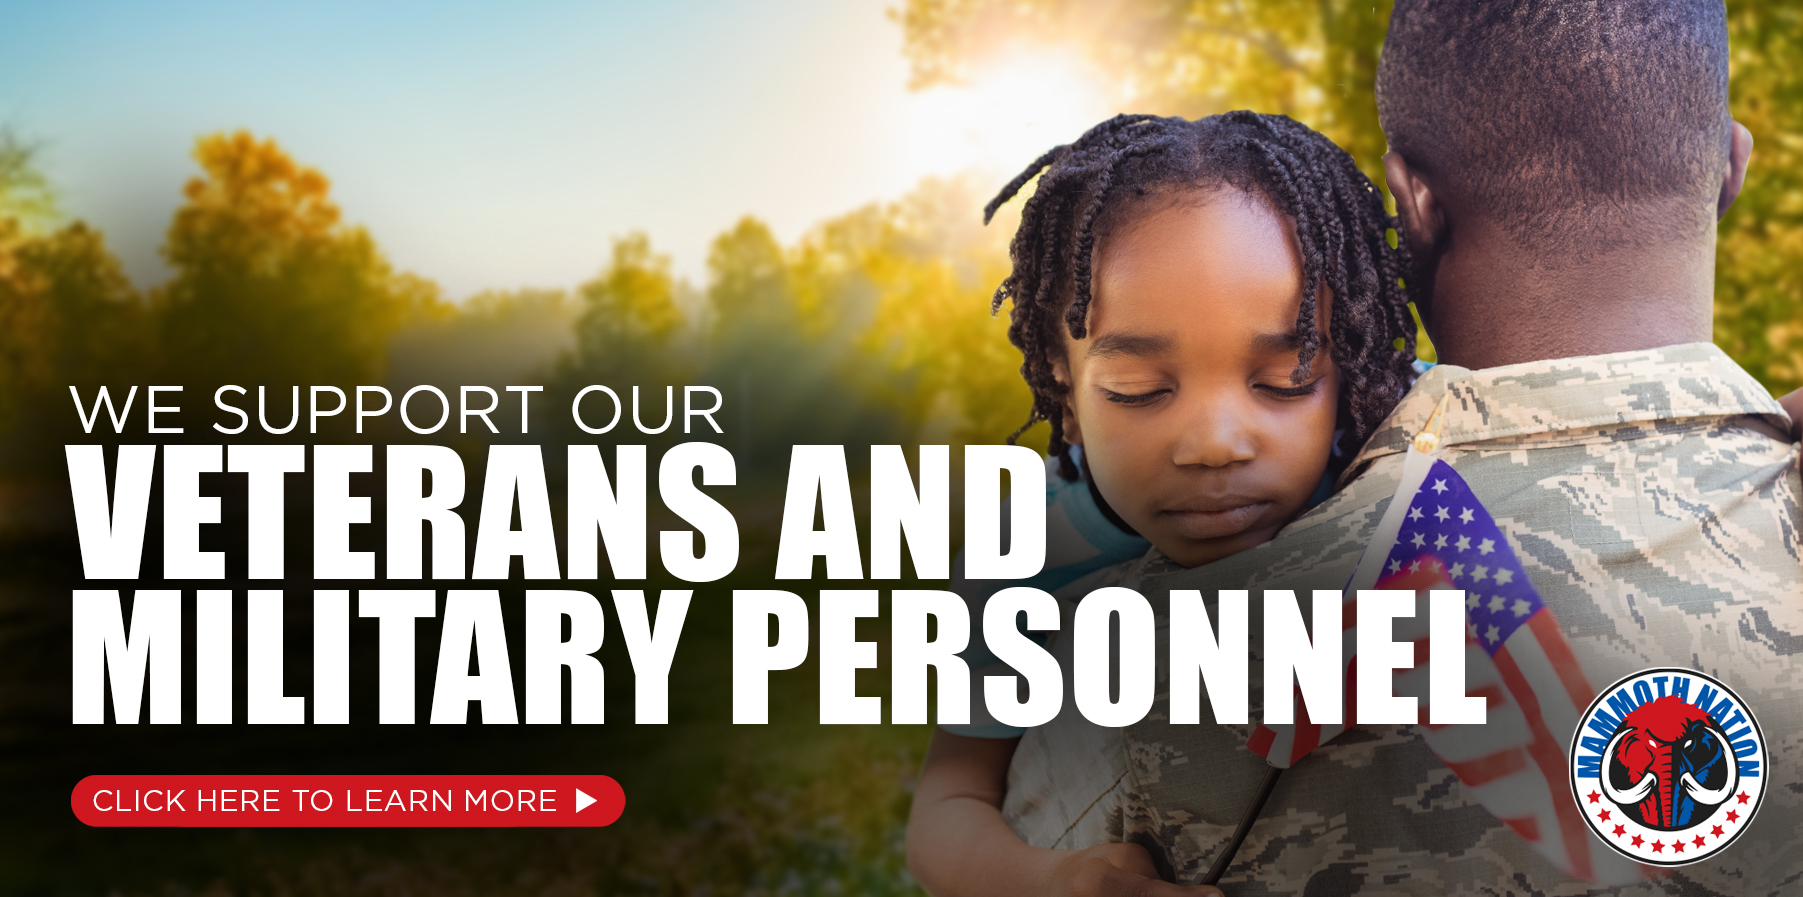 Veterans and Military Personnel